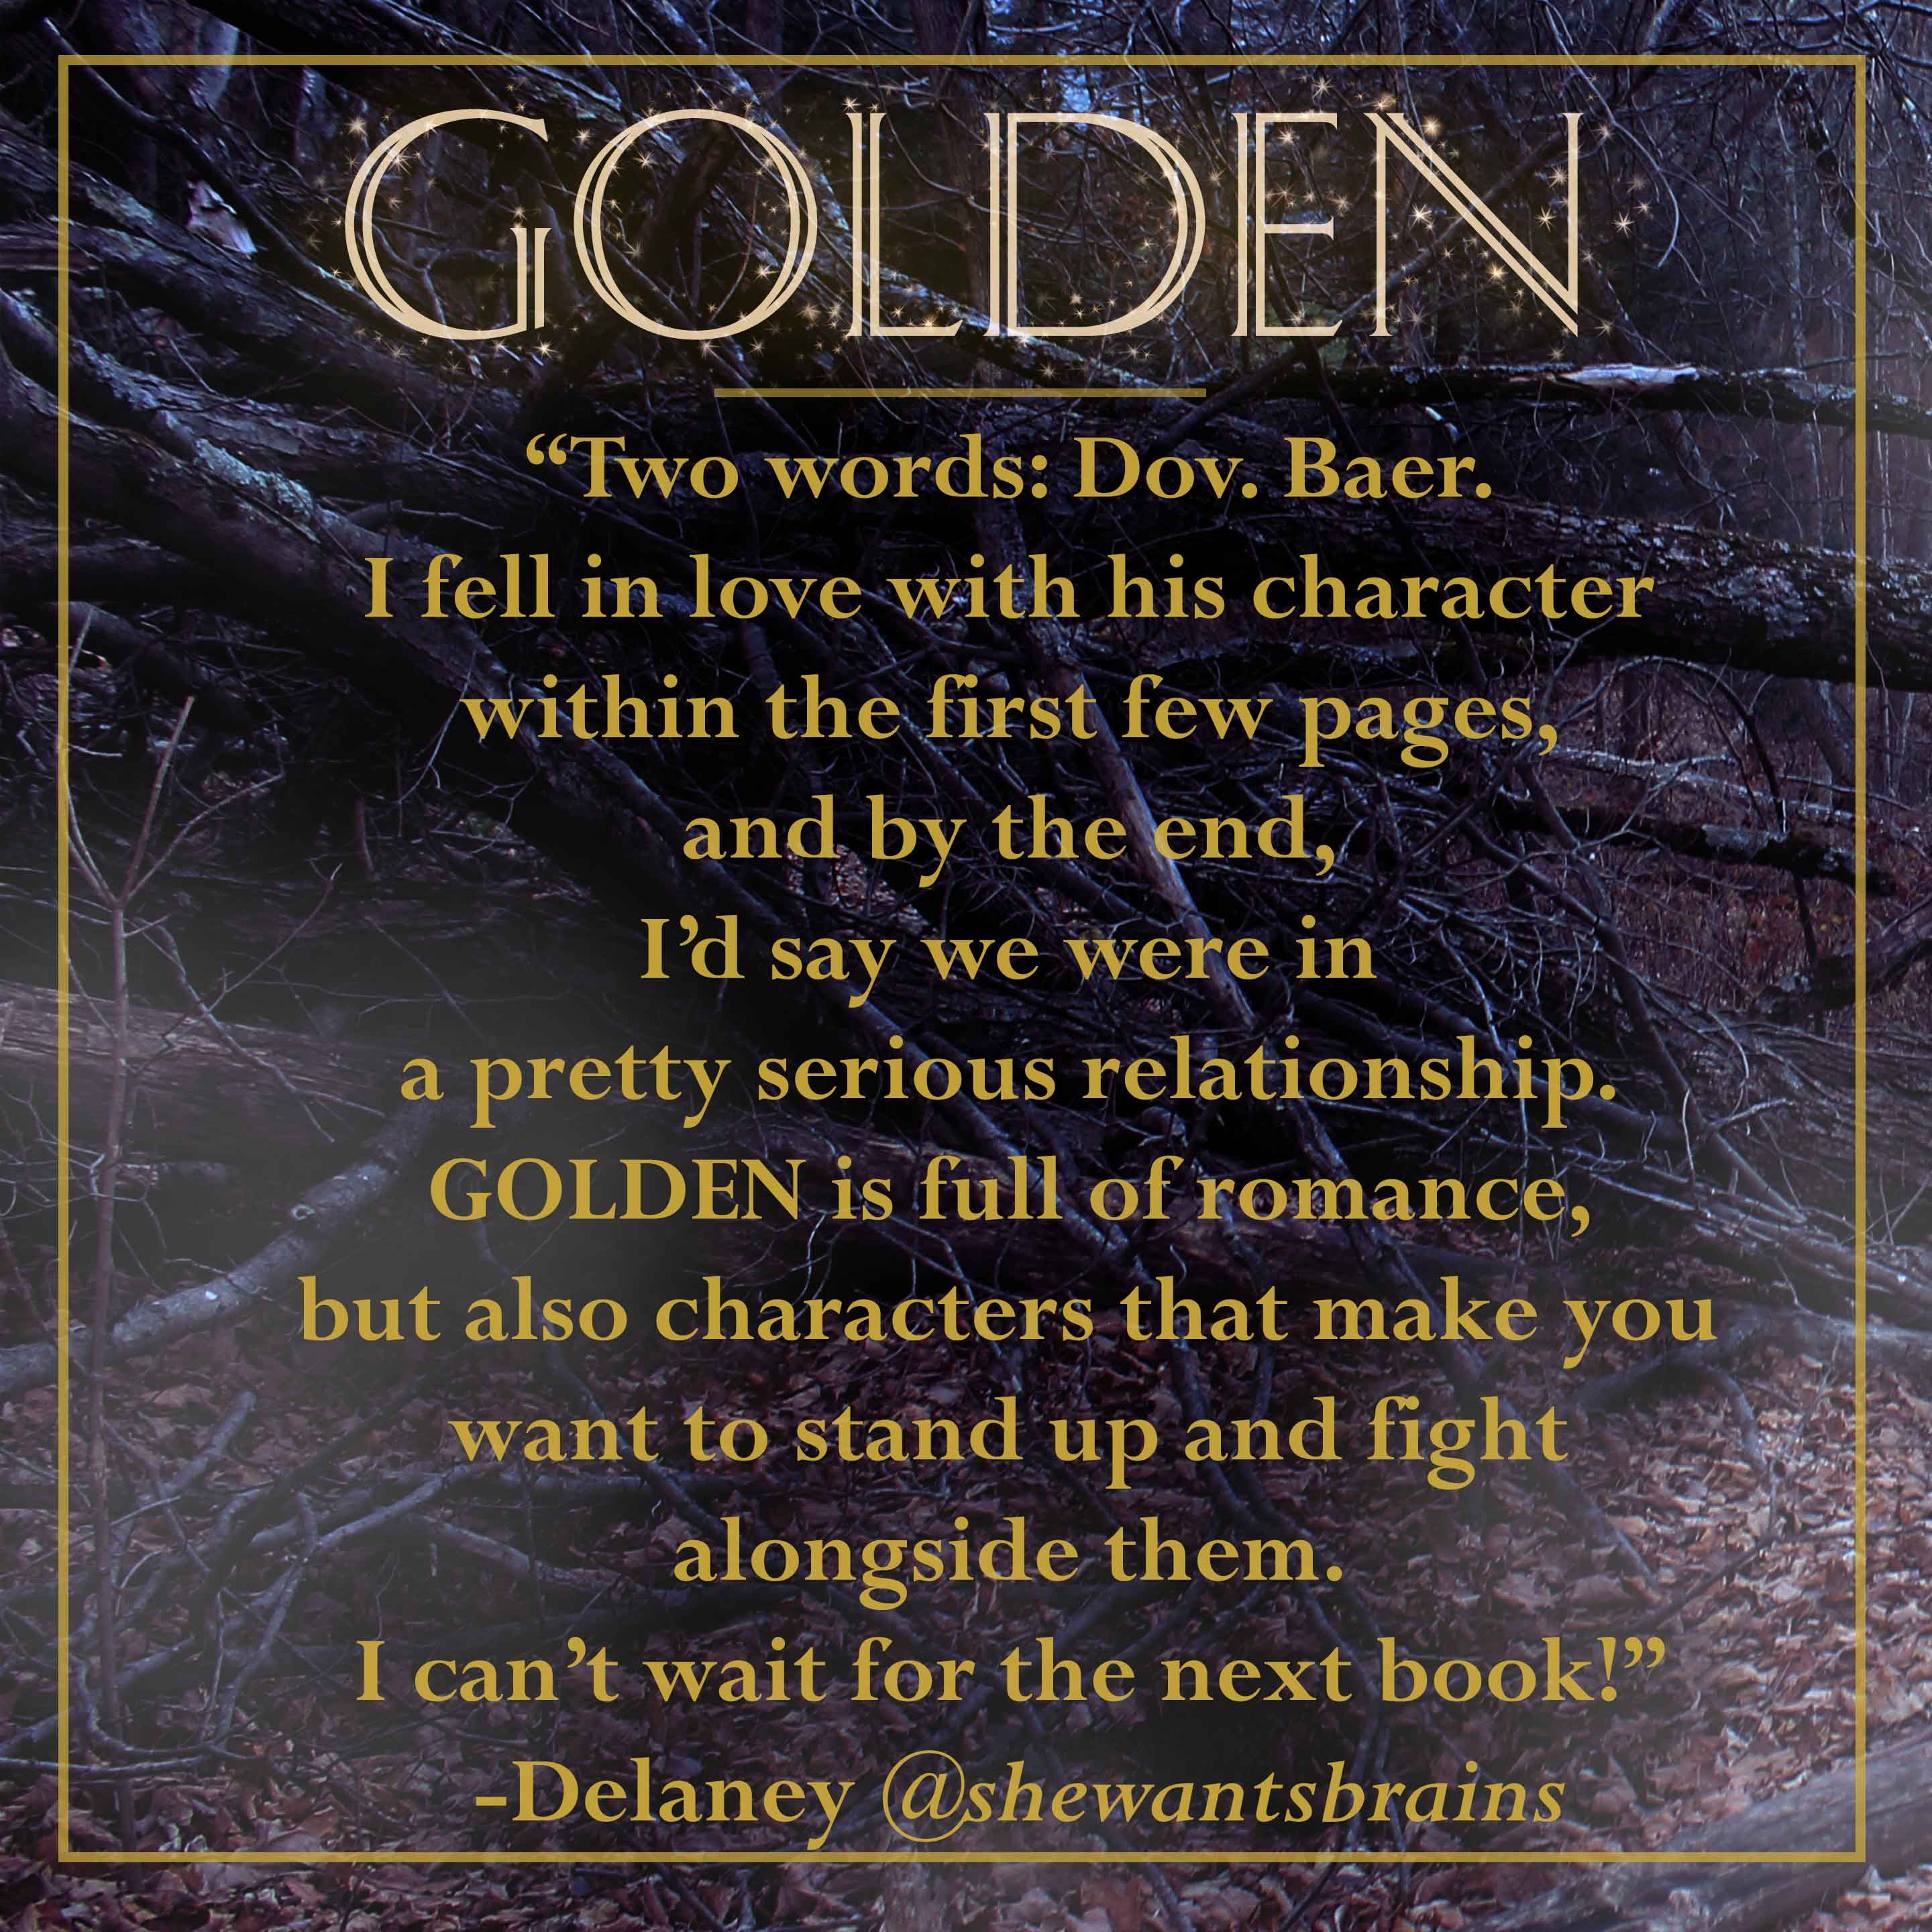 golden fan quote-delany